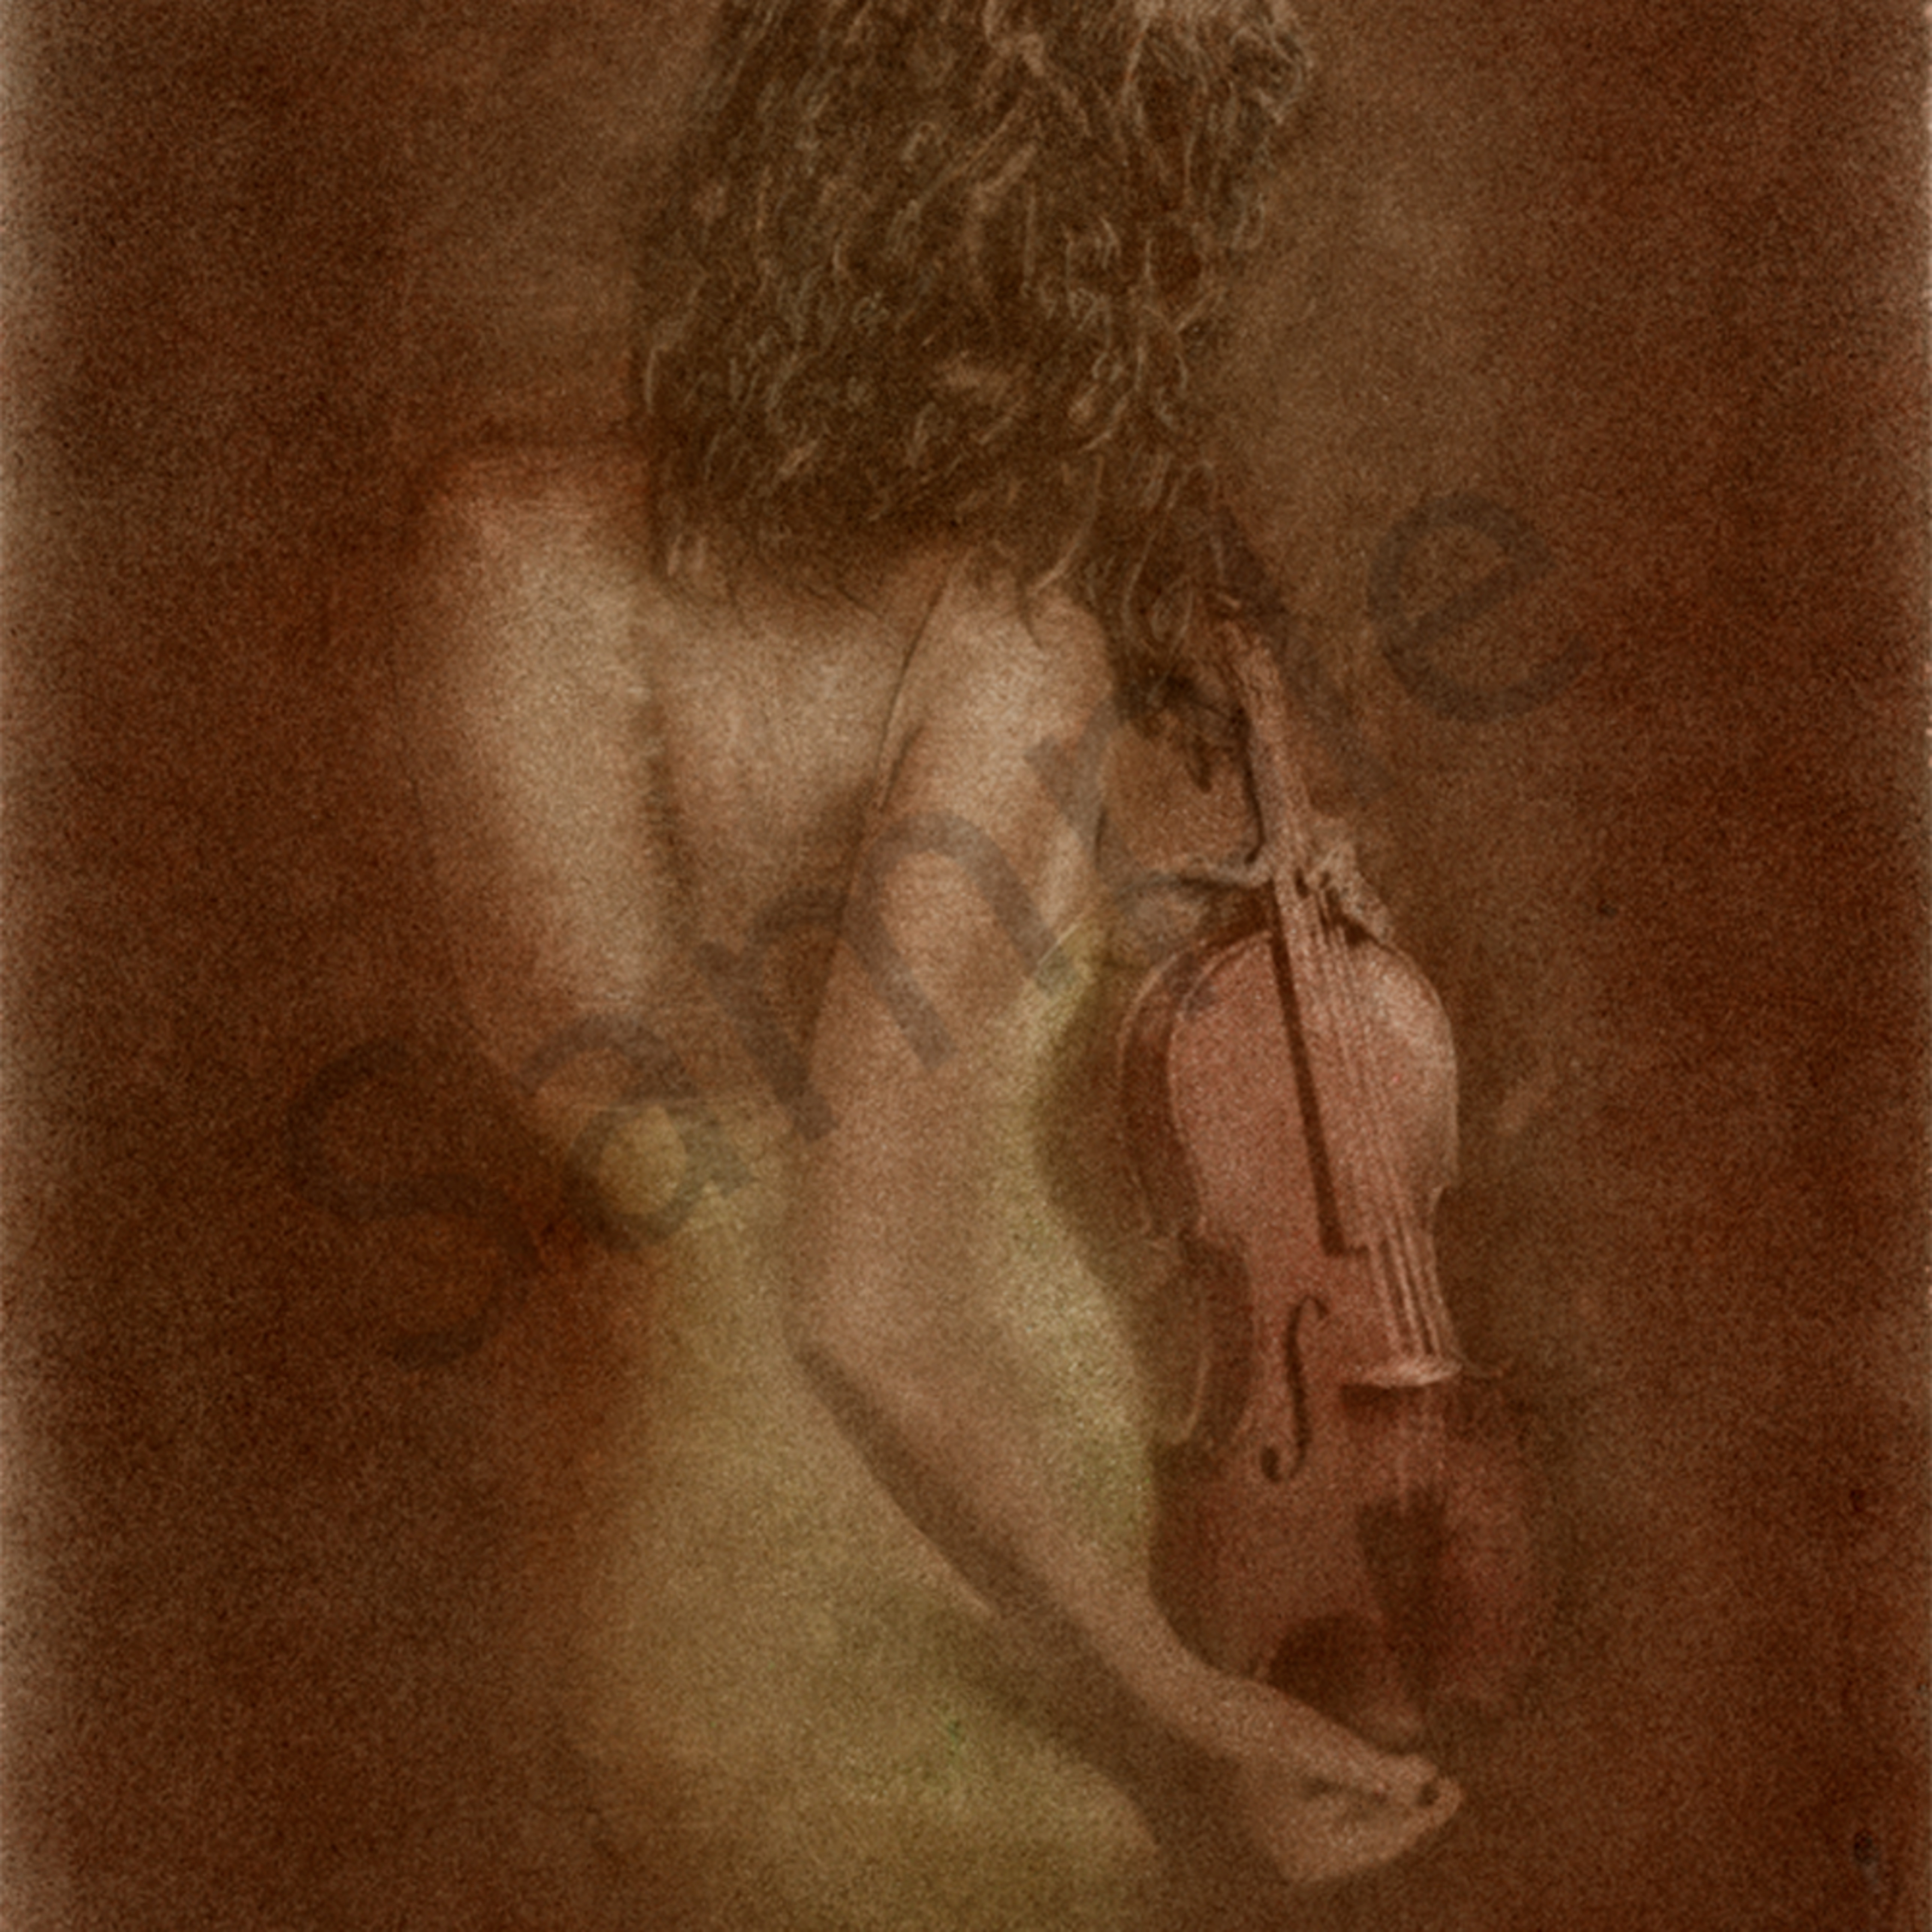 Dancing with the violin znnsr3